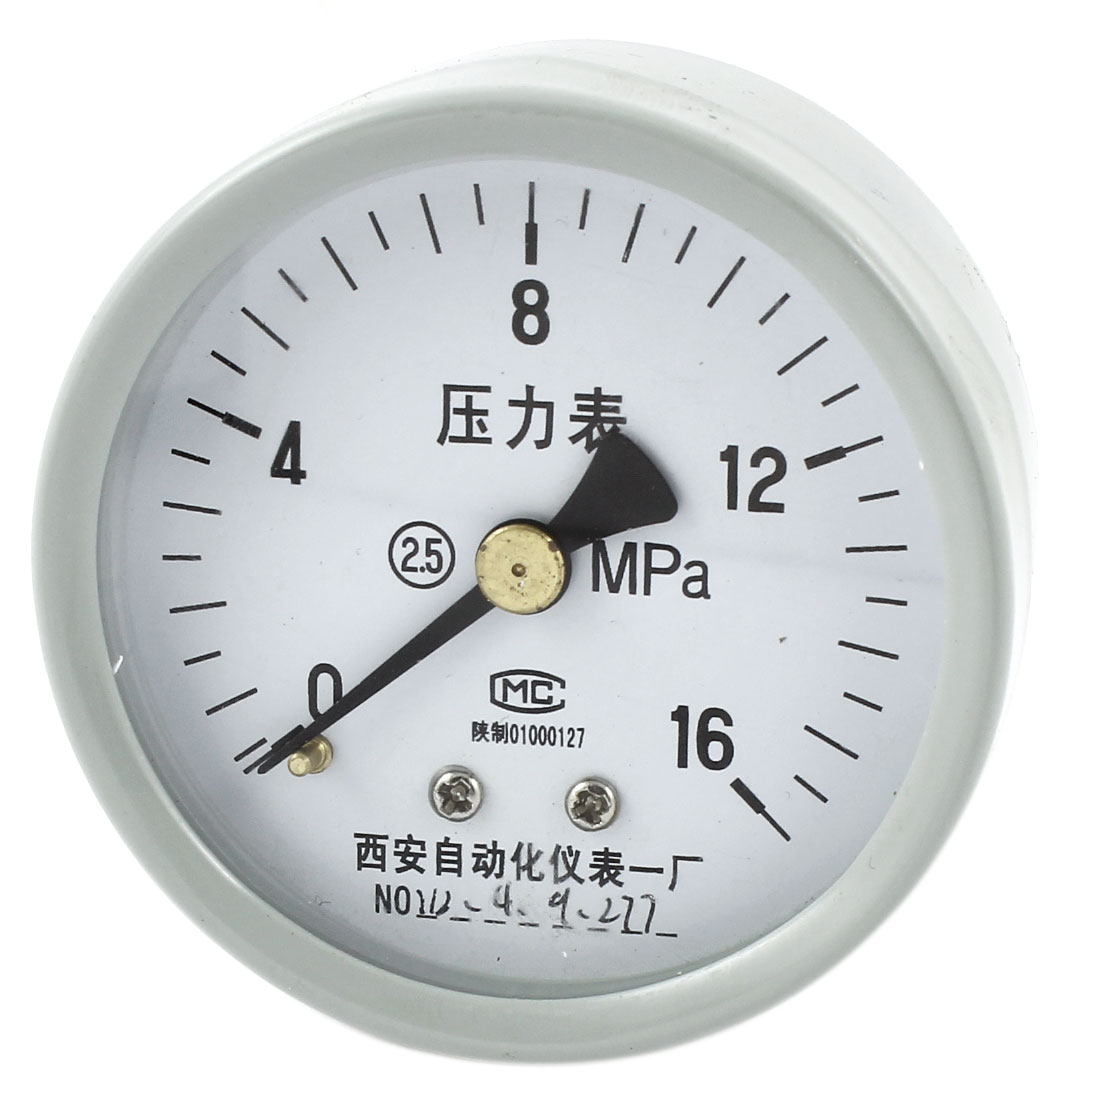 1/4PT Threaded 0-16Mpa Arabic Number Display Air Pressure Testing Measuring Gauge